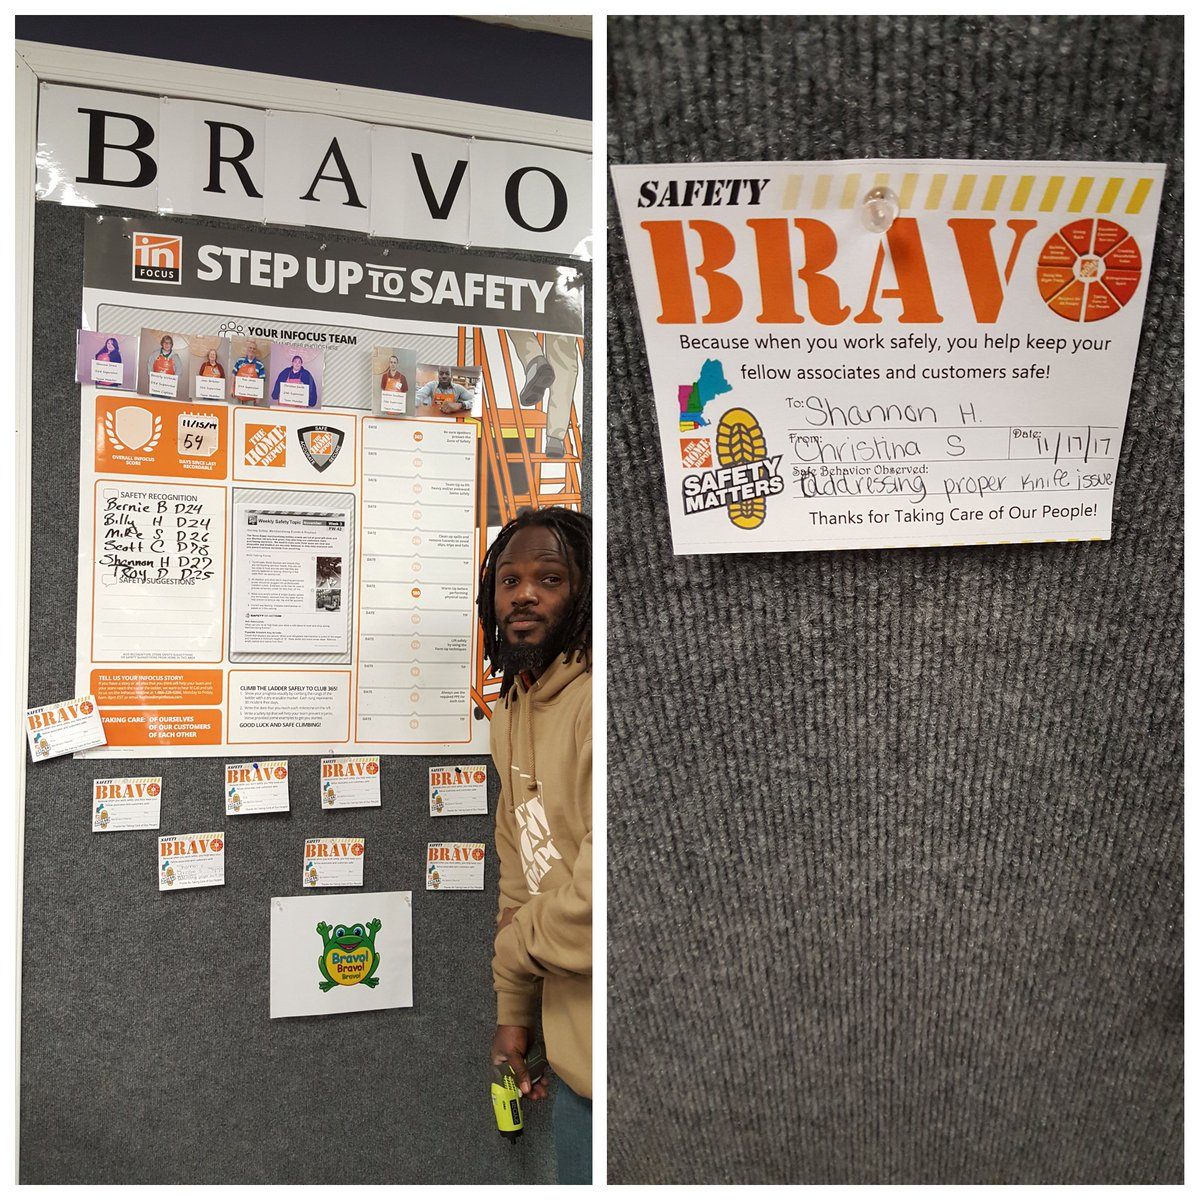 New #SafetyBravo is up let the Recognitions begin #SafetyFirst #StepUpToSafety #THEDEEN is committed @ryan3040 safe environment for customers and associates alike @b_mungul Shannon #InfocusCaptain first on recognized by a fellow leader Christina<br>http://pic.twitter.com/WooKf5j2K9 &ndash; à The Home Depot